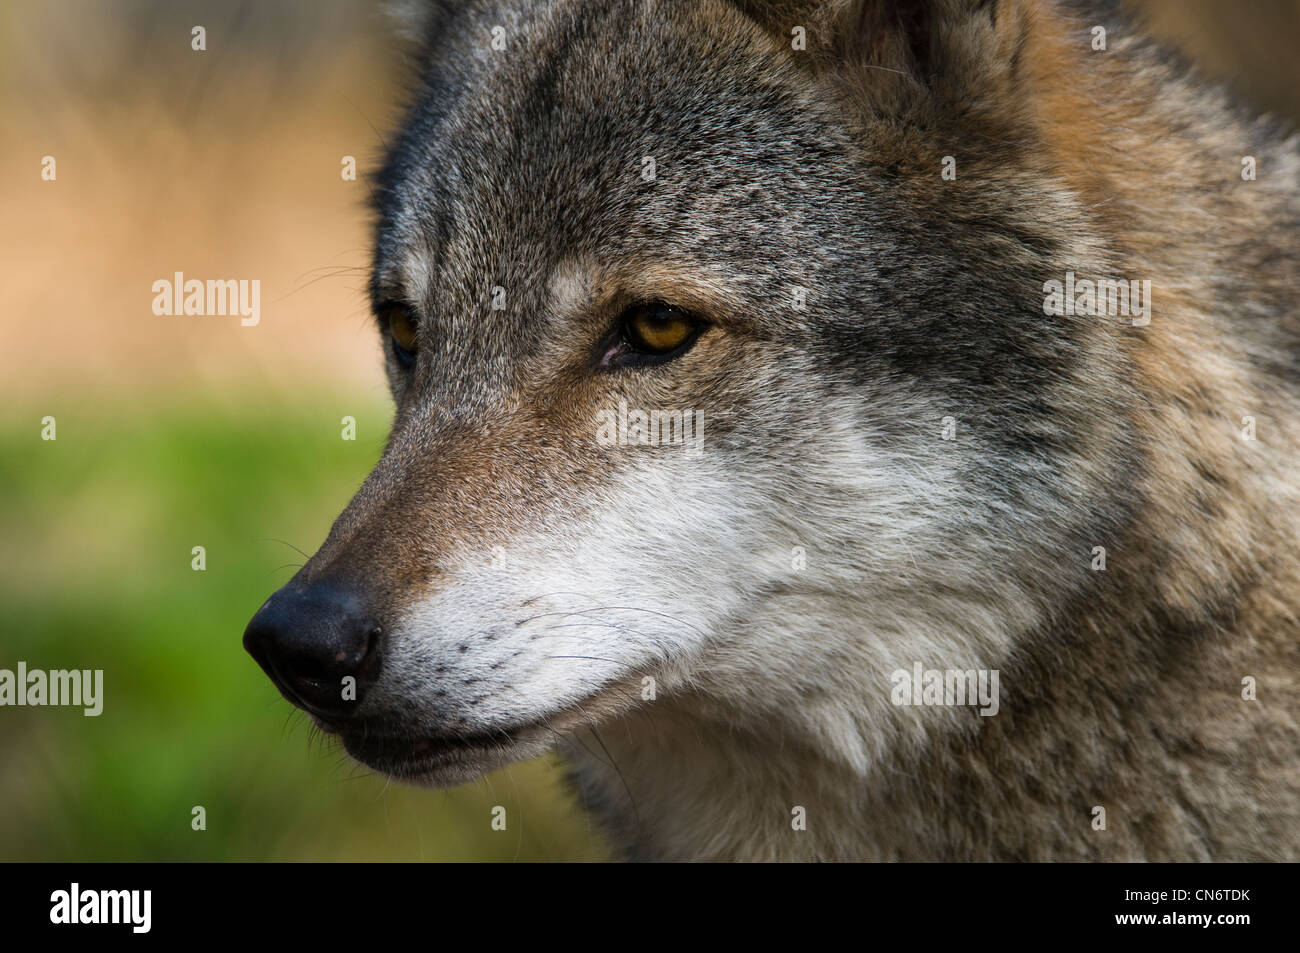 how to wolf whistle diagram 480v 240 120v transformer wiring list of synonyms and antonyms the word muzzle